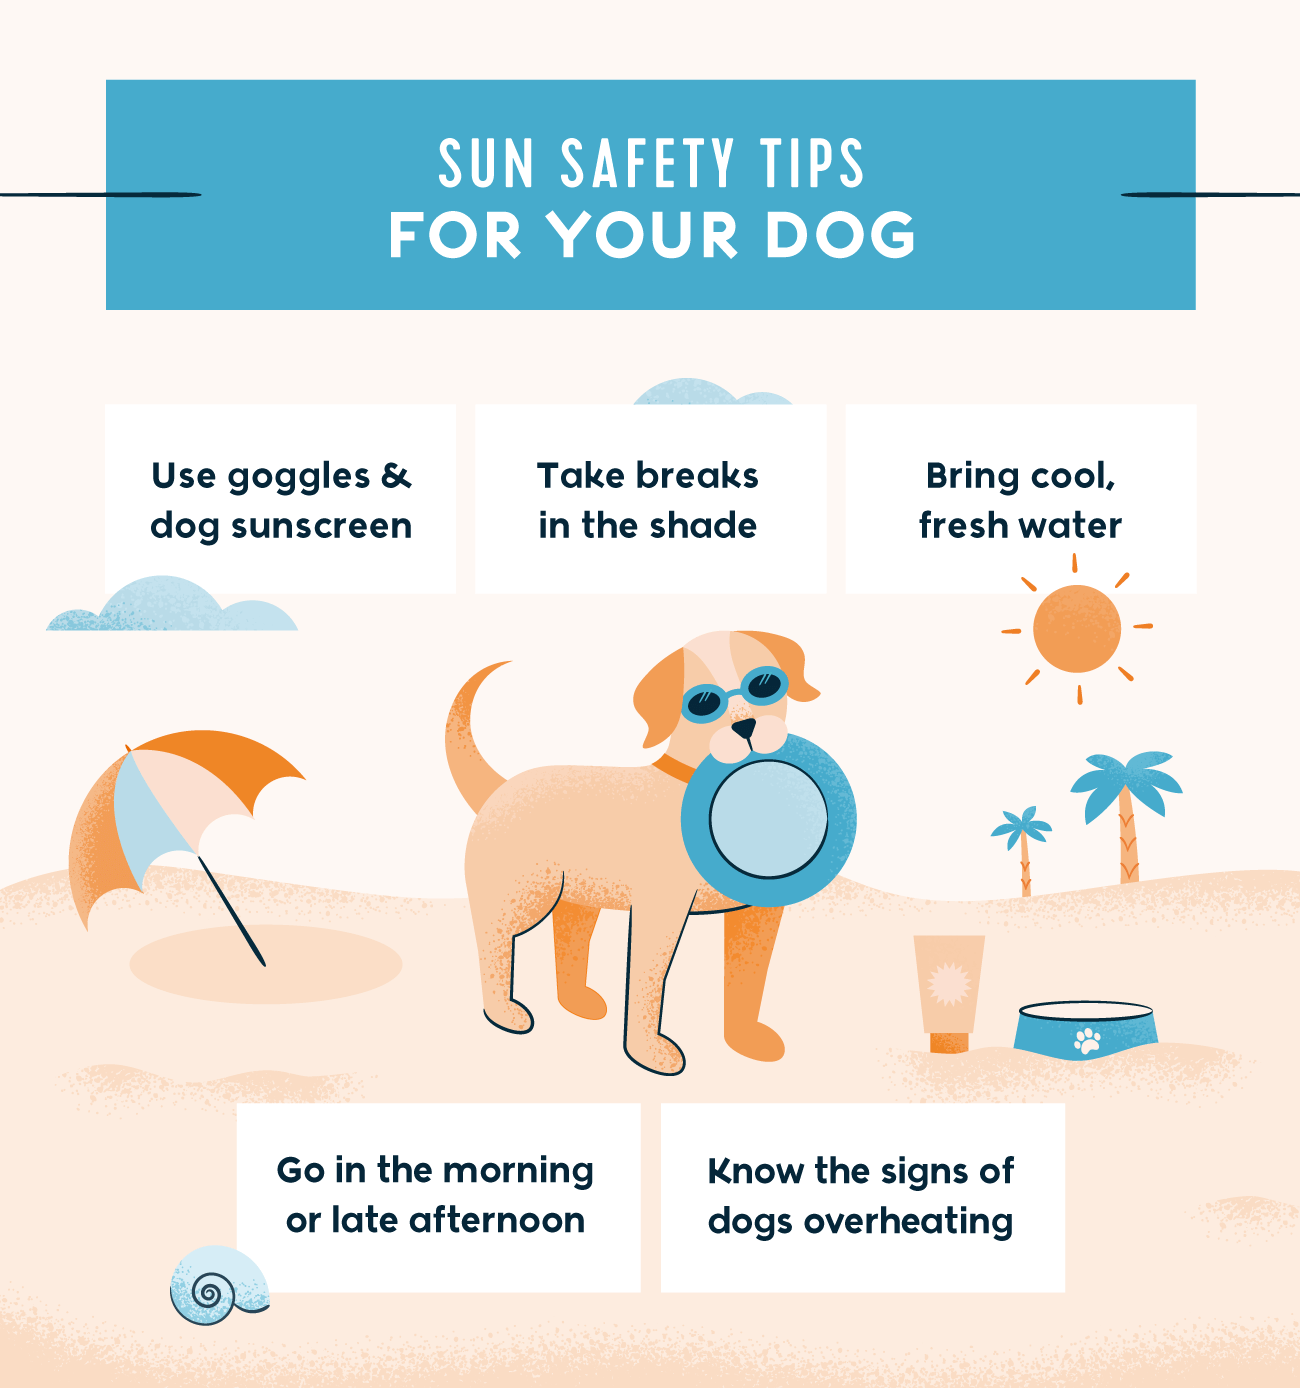 sun safety tips for your dog